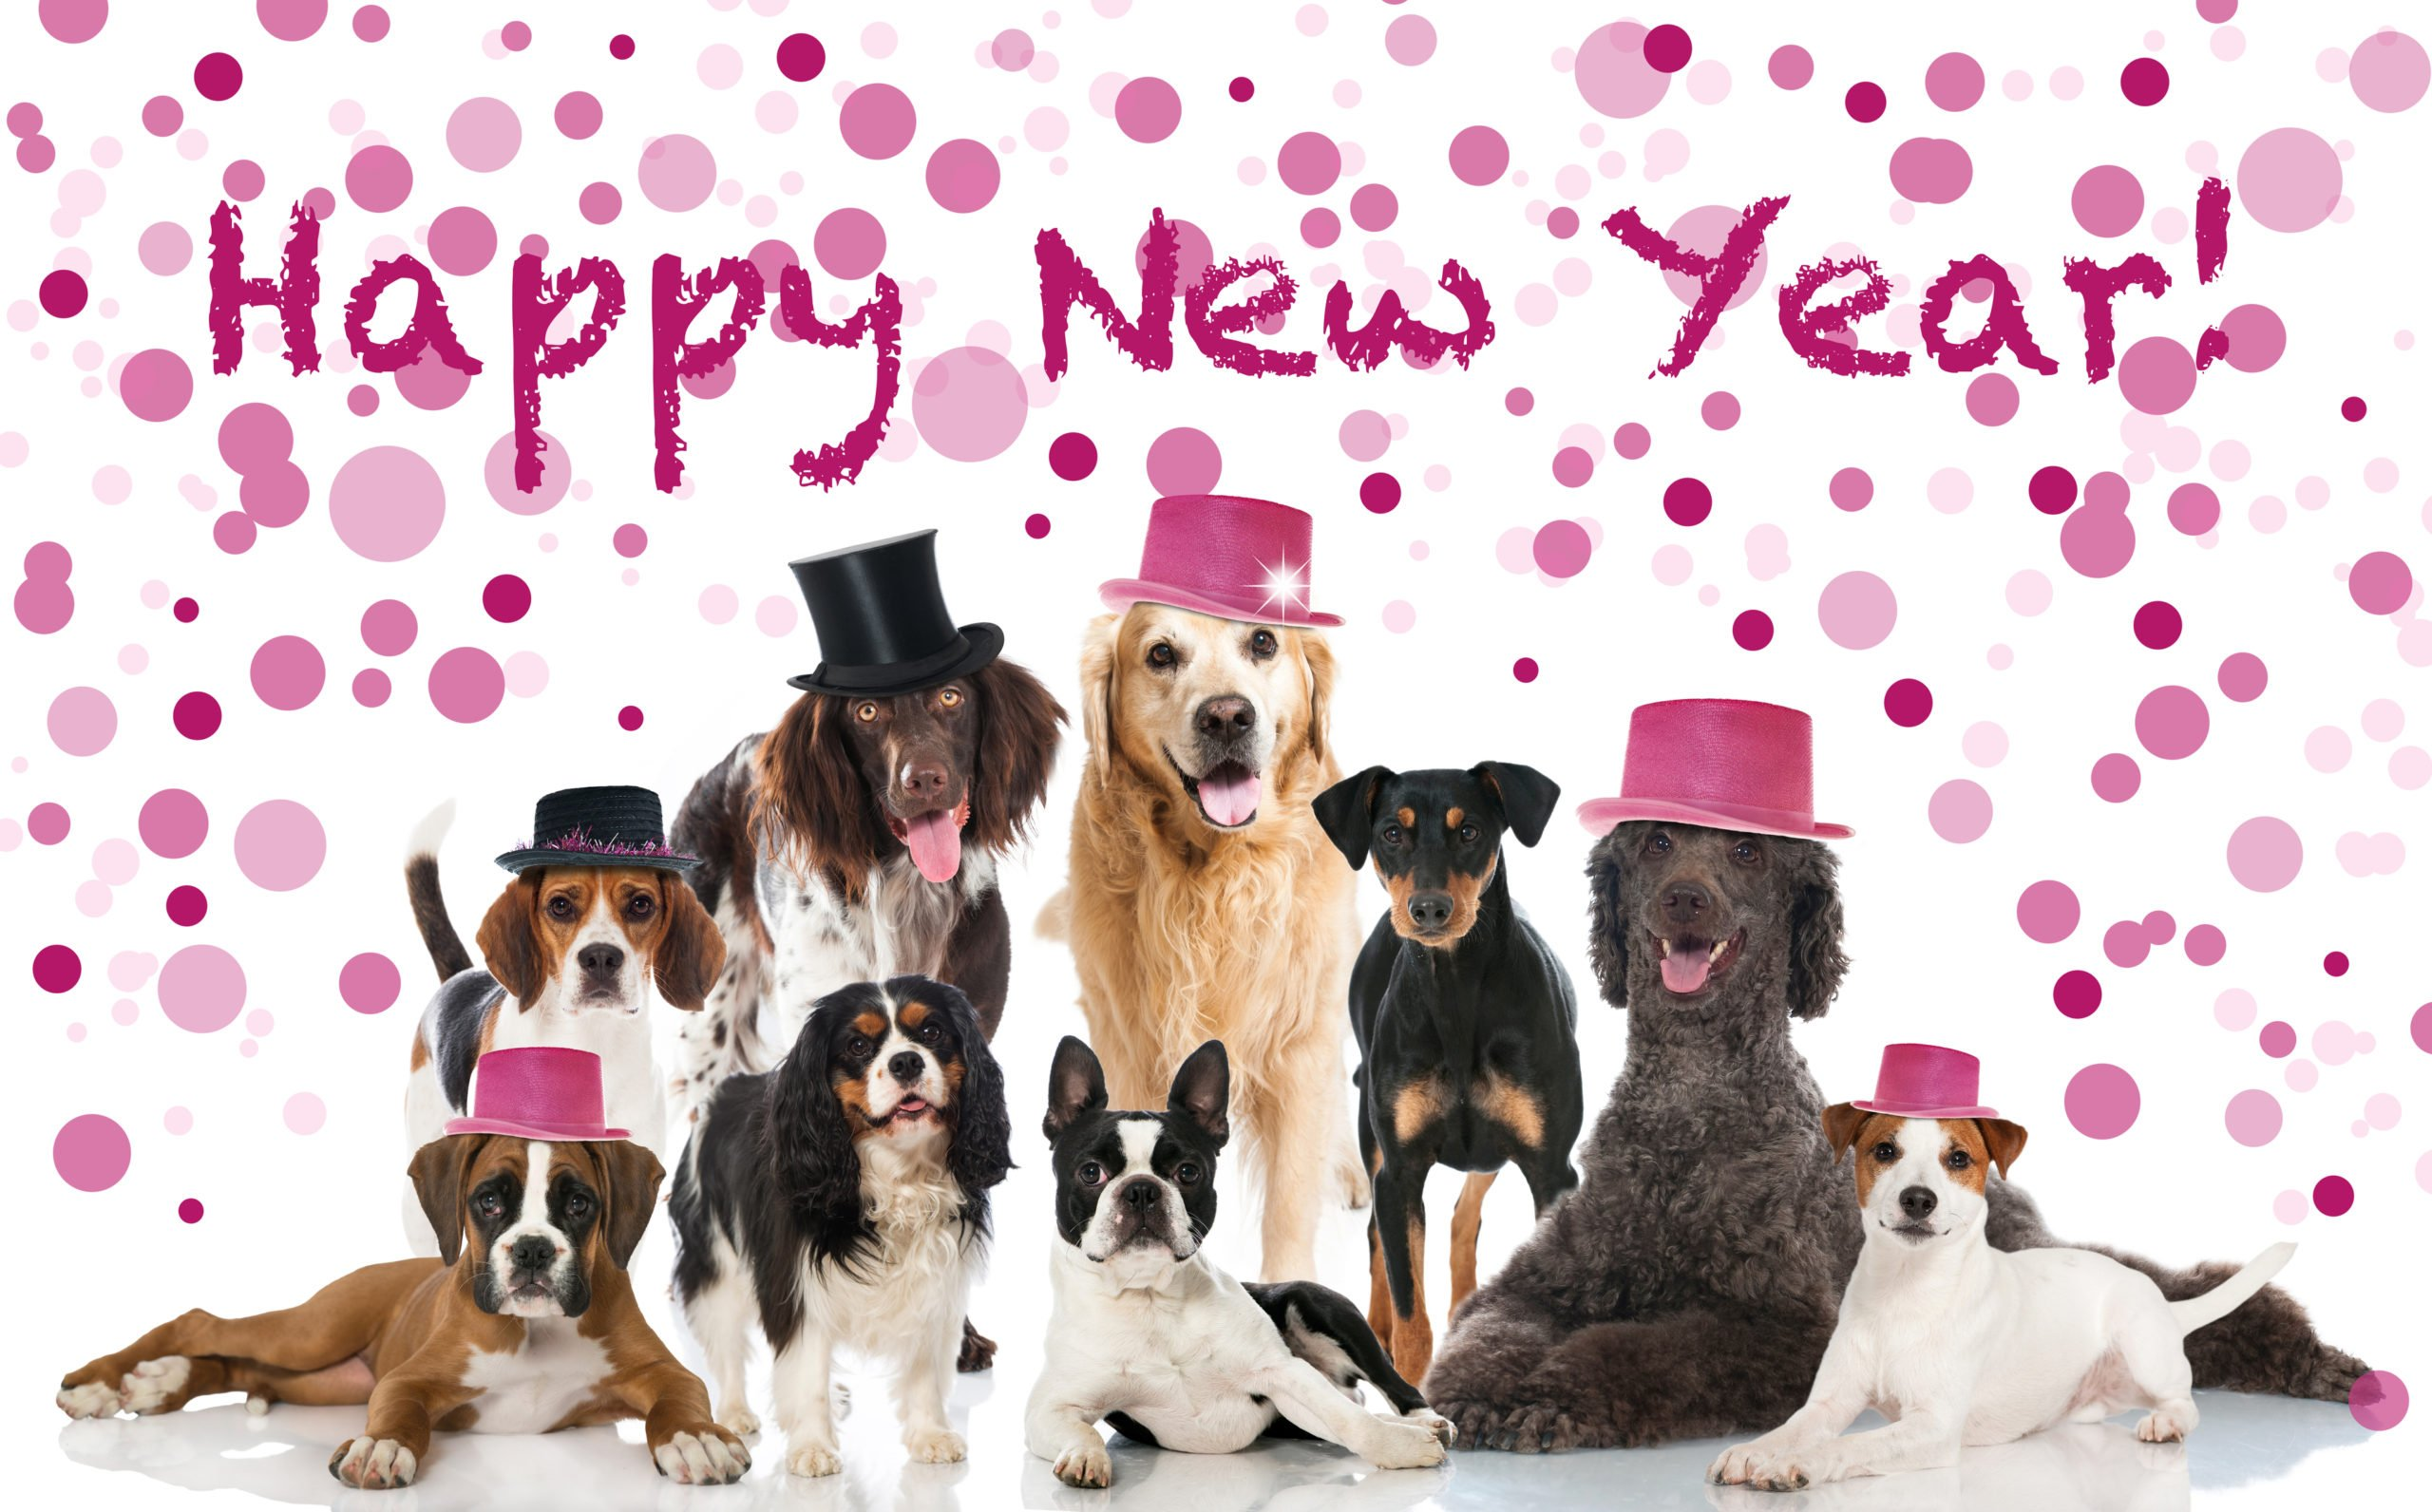 Wishing everyone a healthy and safe New Year!